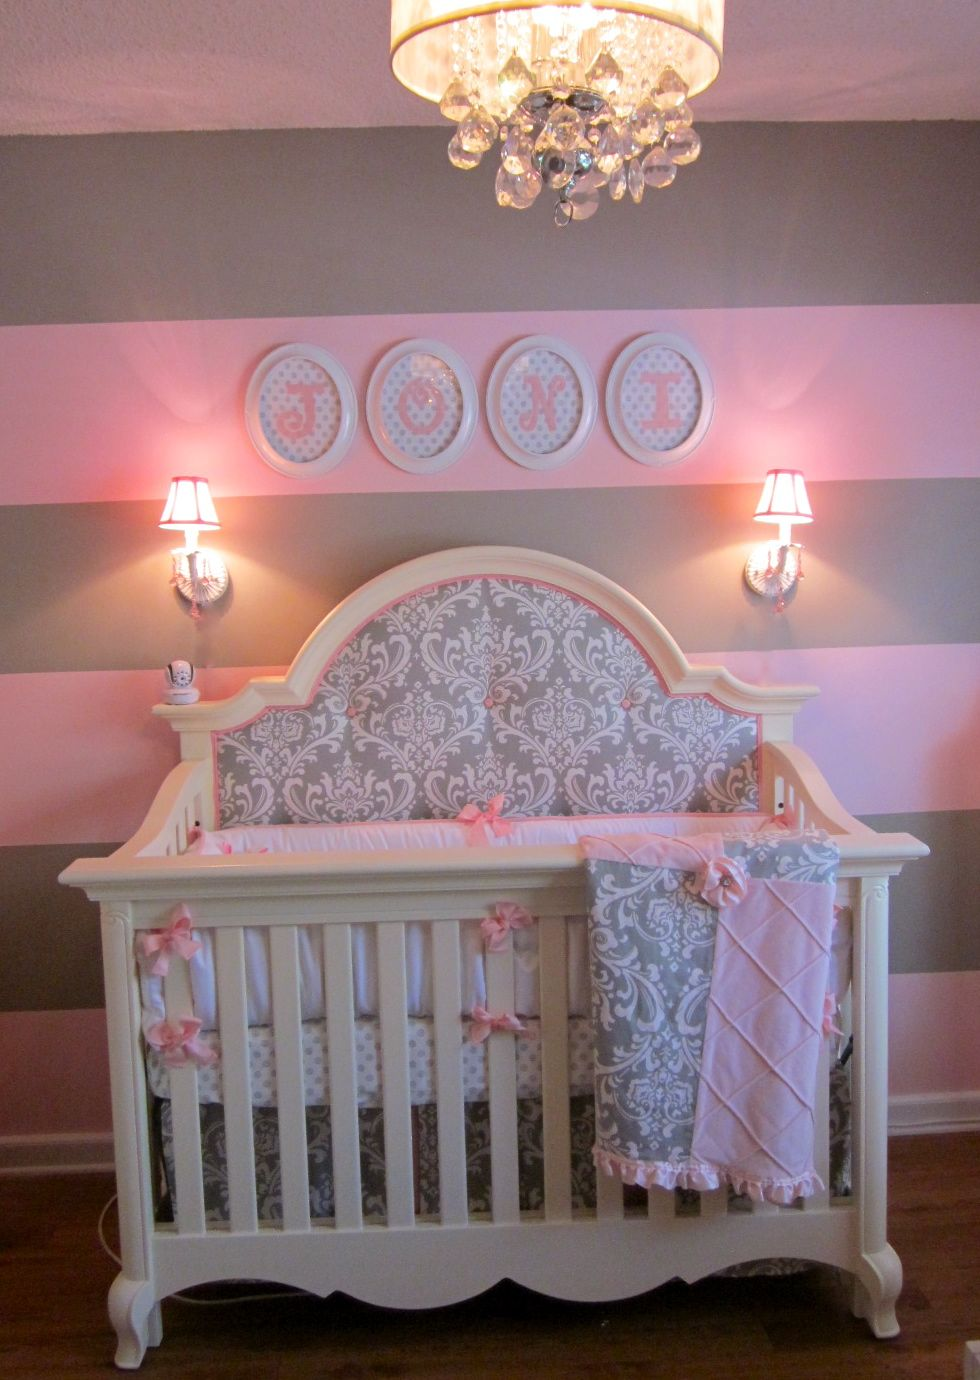 We Were Ecstatic To Find Out Having A I Loved The Soft Look Of Pink And Gray Together Felt It Was Perfect Combination For Sweet Baby